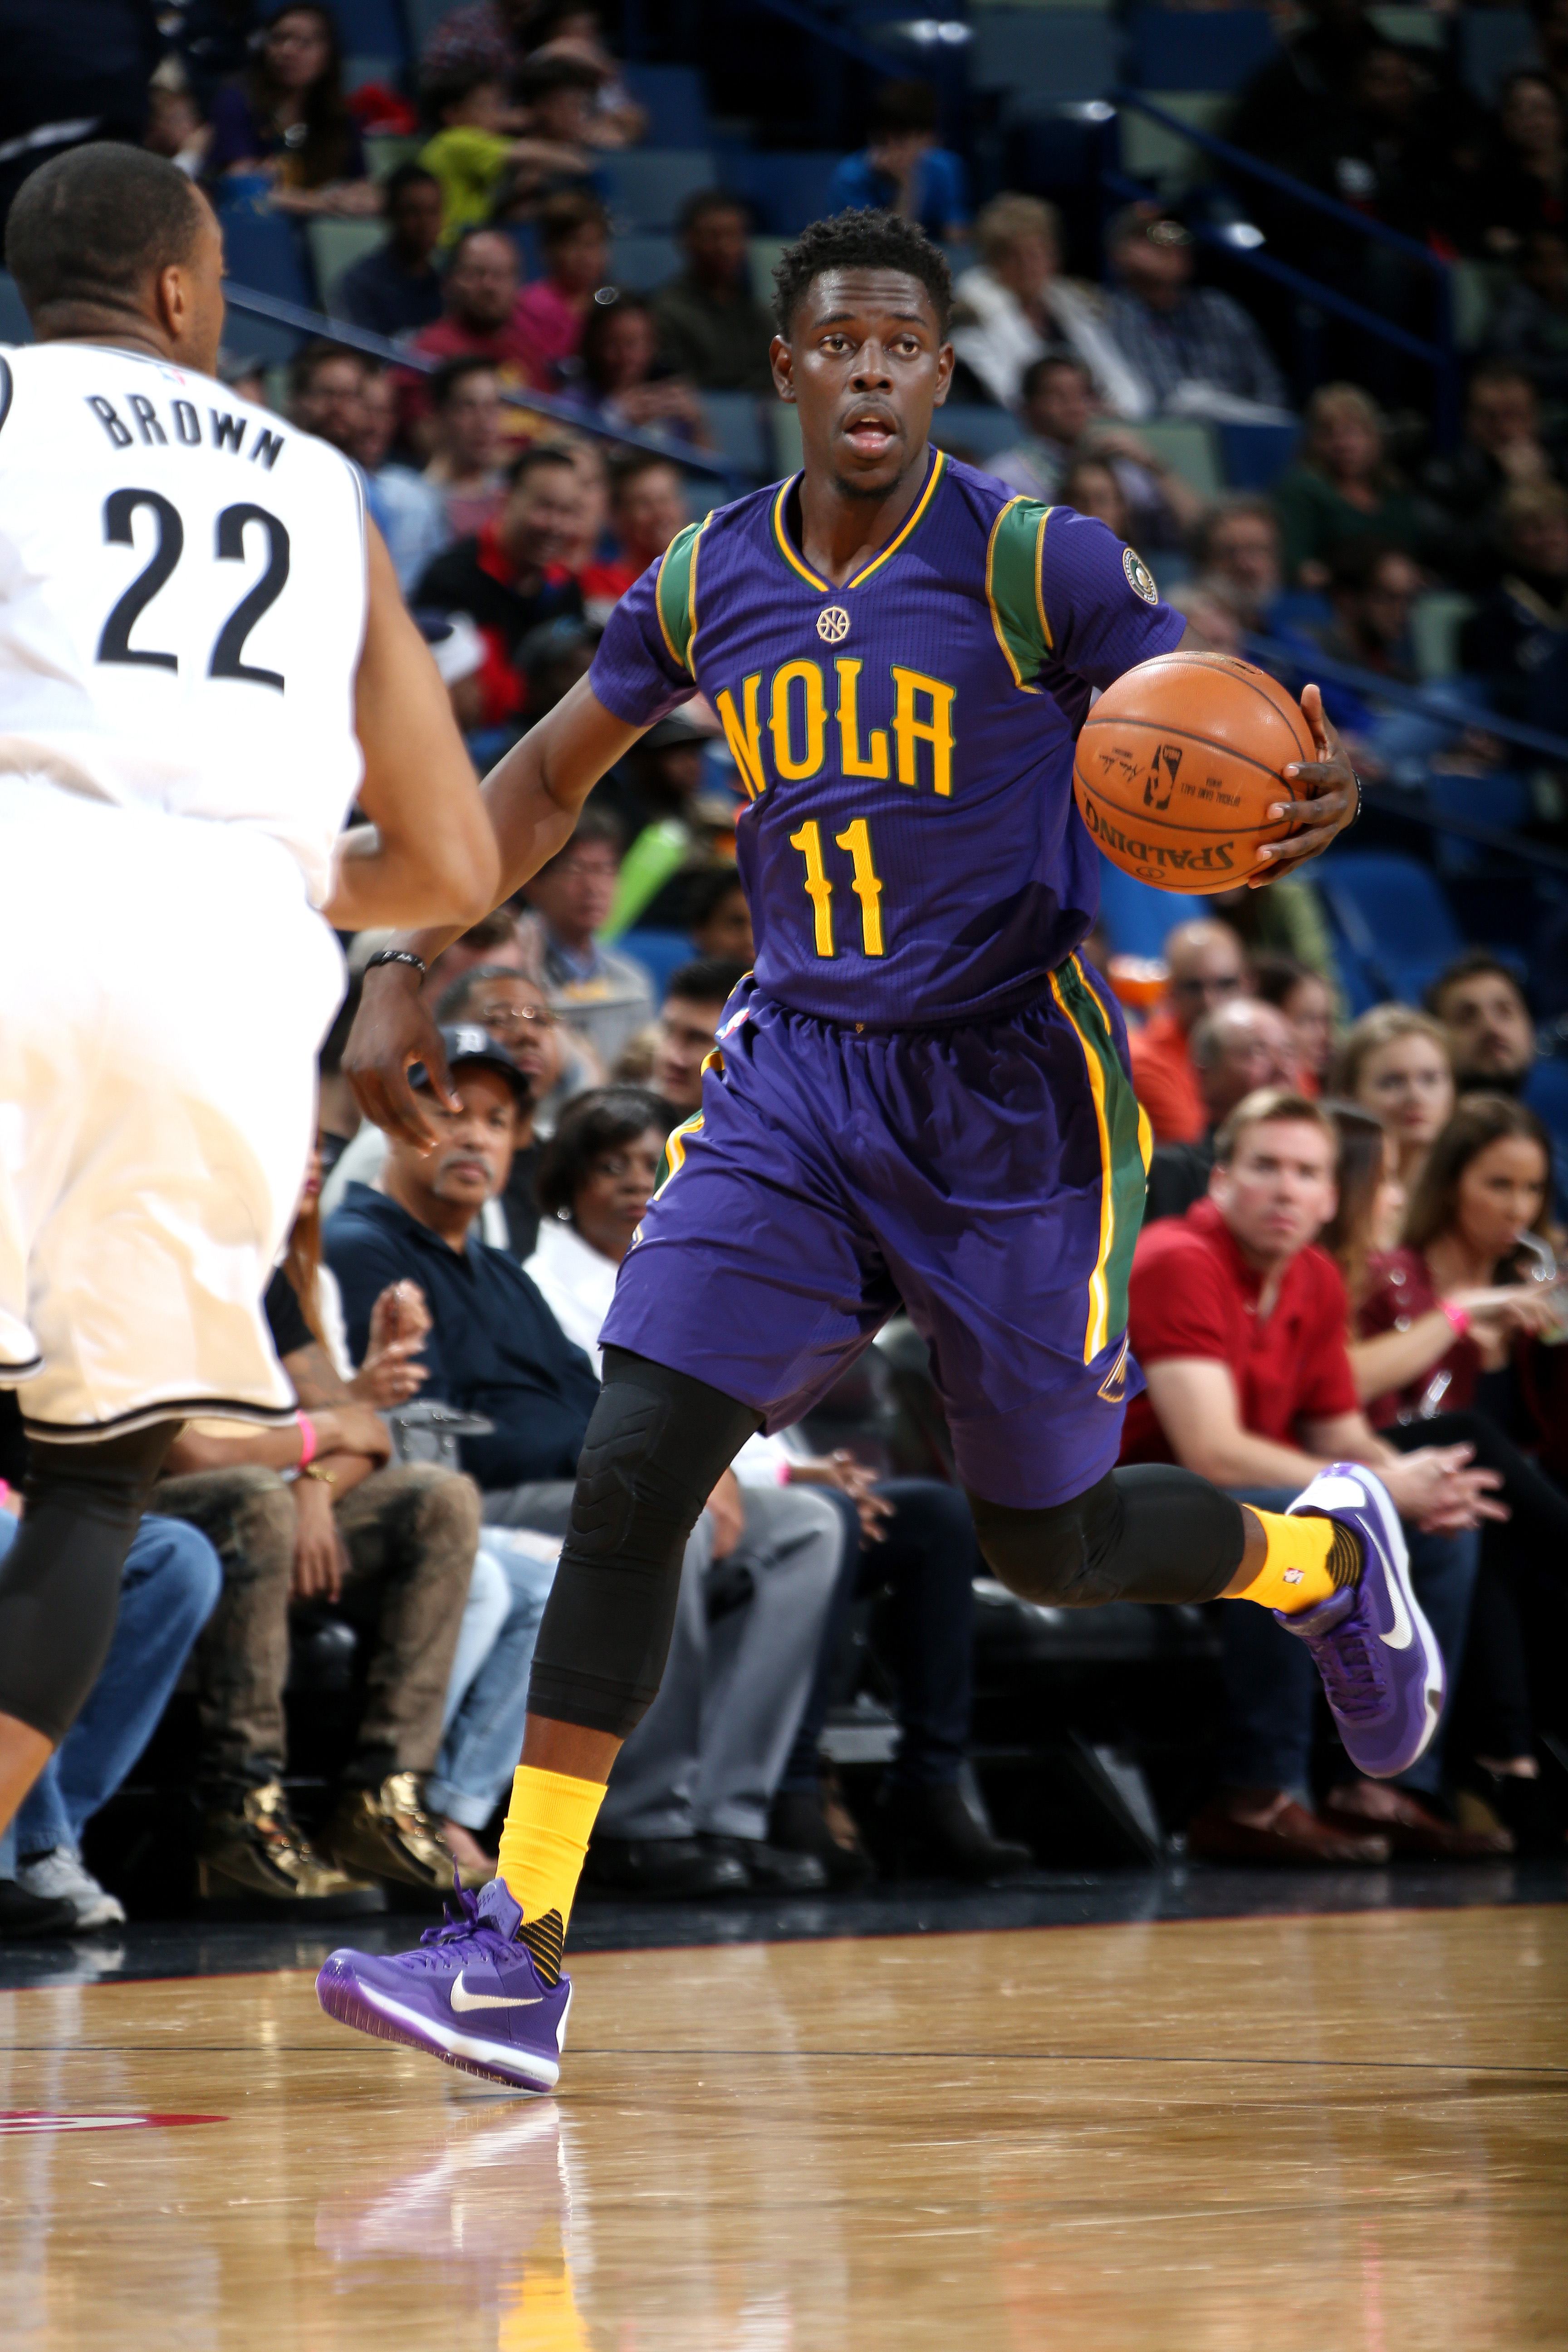 NEW ORLEANS, LA - JANUARY 30: Jrue Holiday #11 of the New Orleans Pelicans handles the ball during the game against the Brooklyn Nets on January 30, 2016 at the Smoothie King Center in New Orleans, Louisiana. (Photo by Layne Murdoch Jr./NBAE via Getty Ima